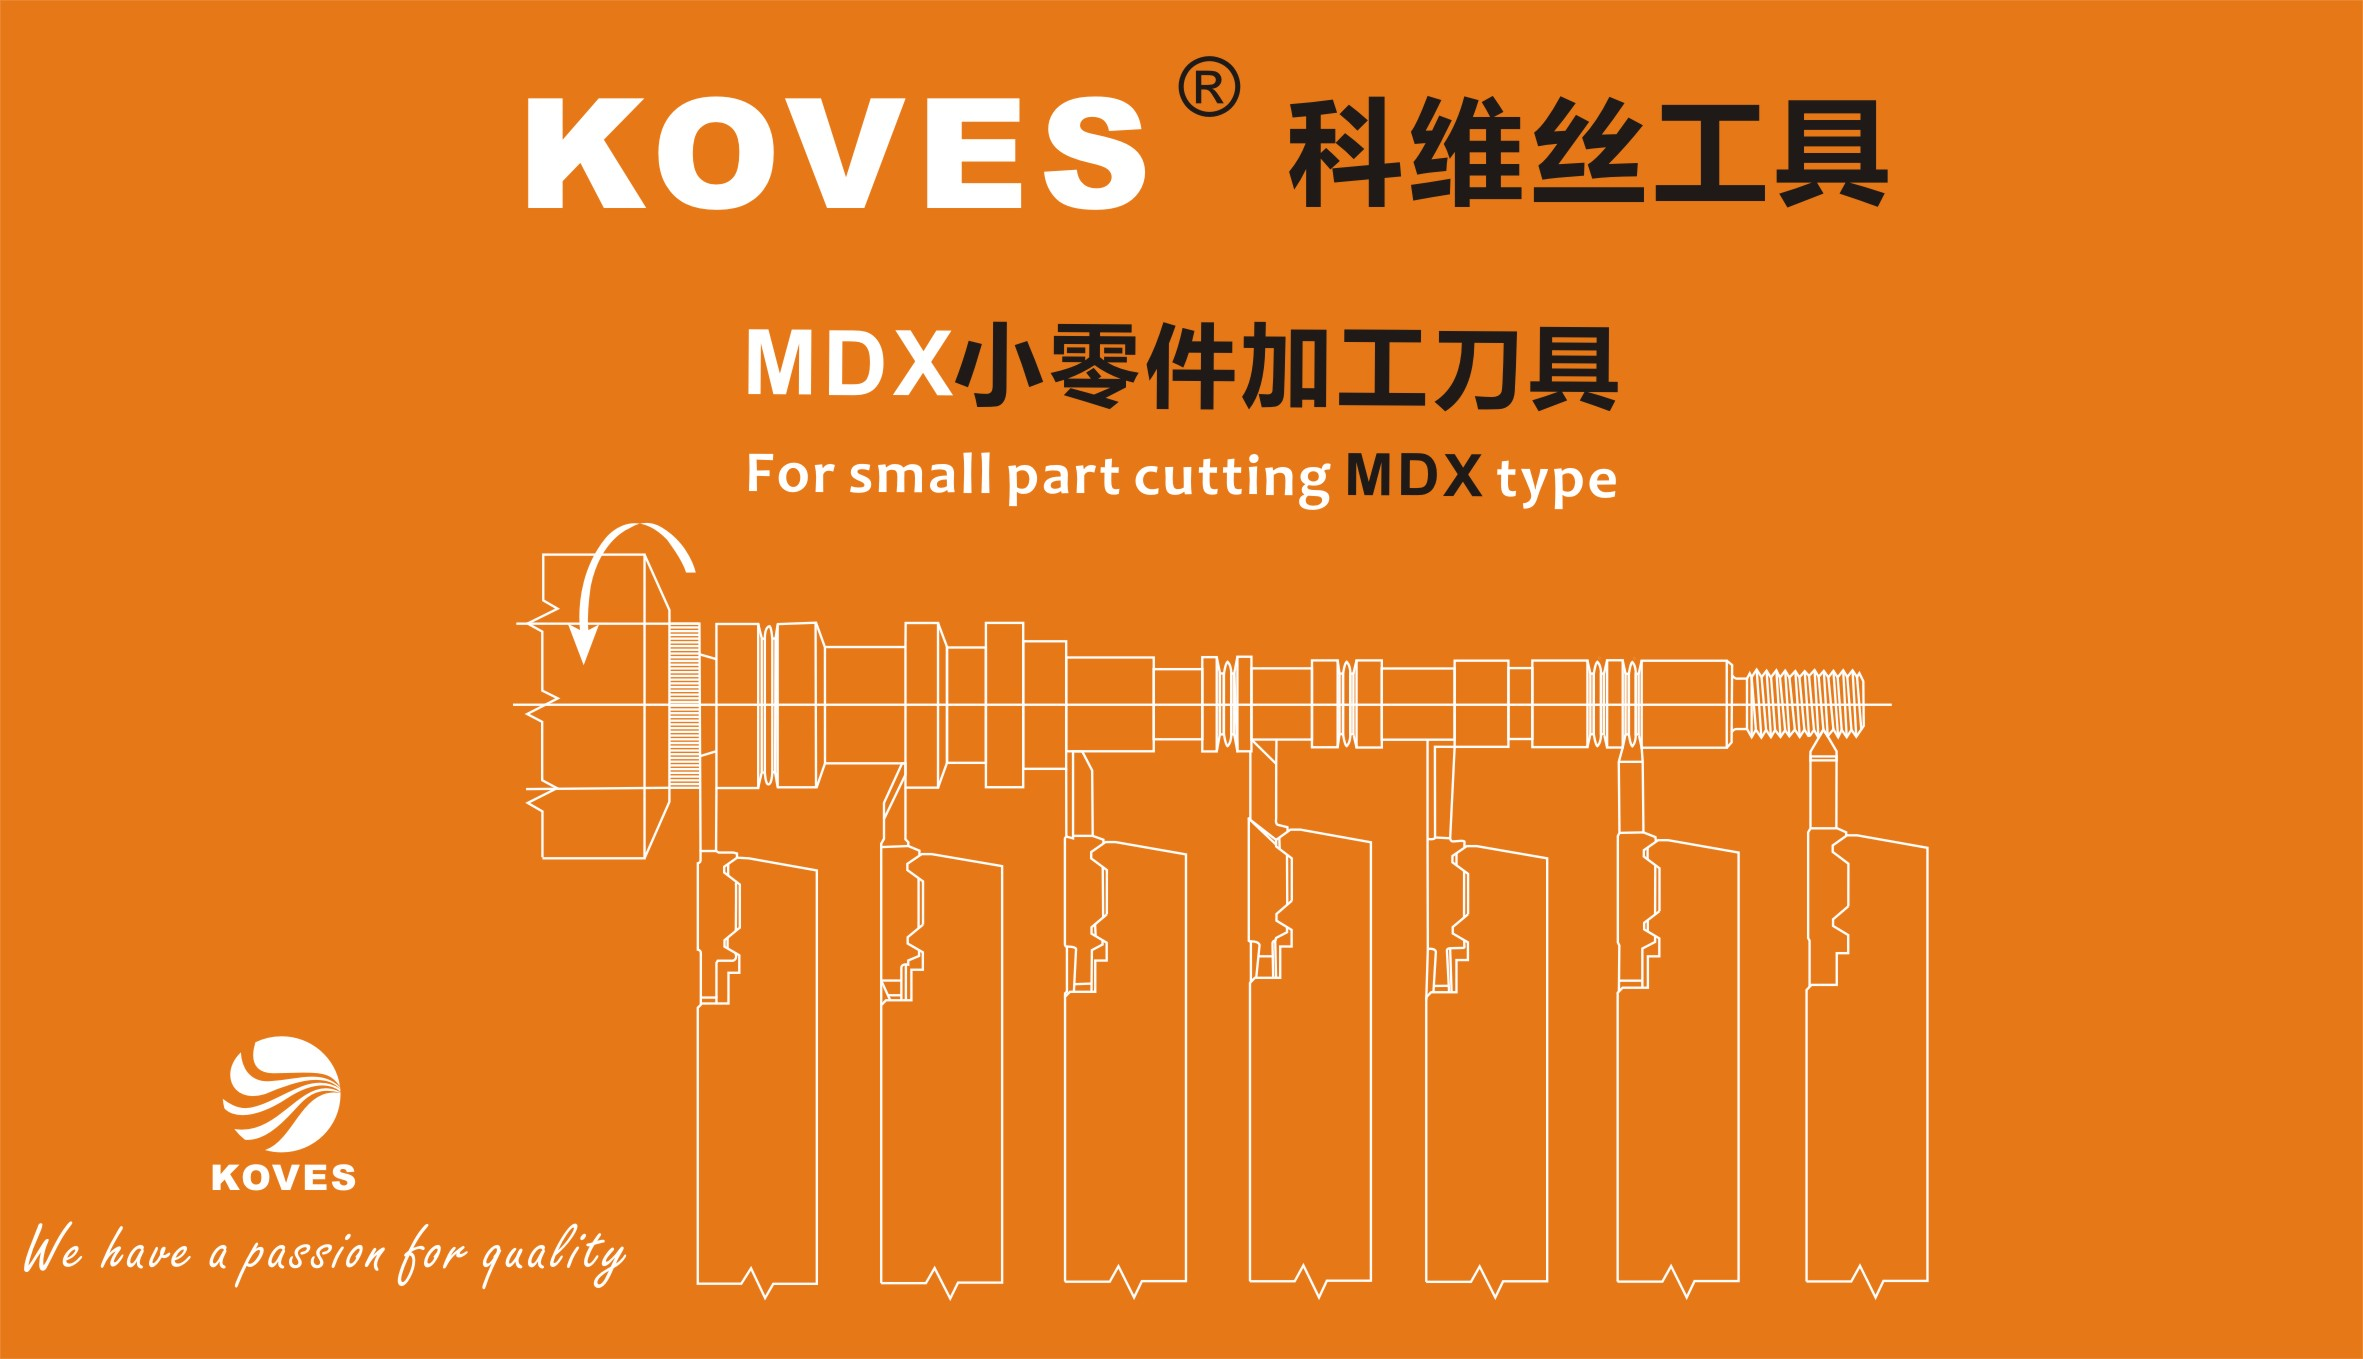 <b>MDX For small part cutting</b>